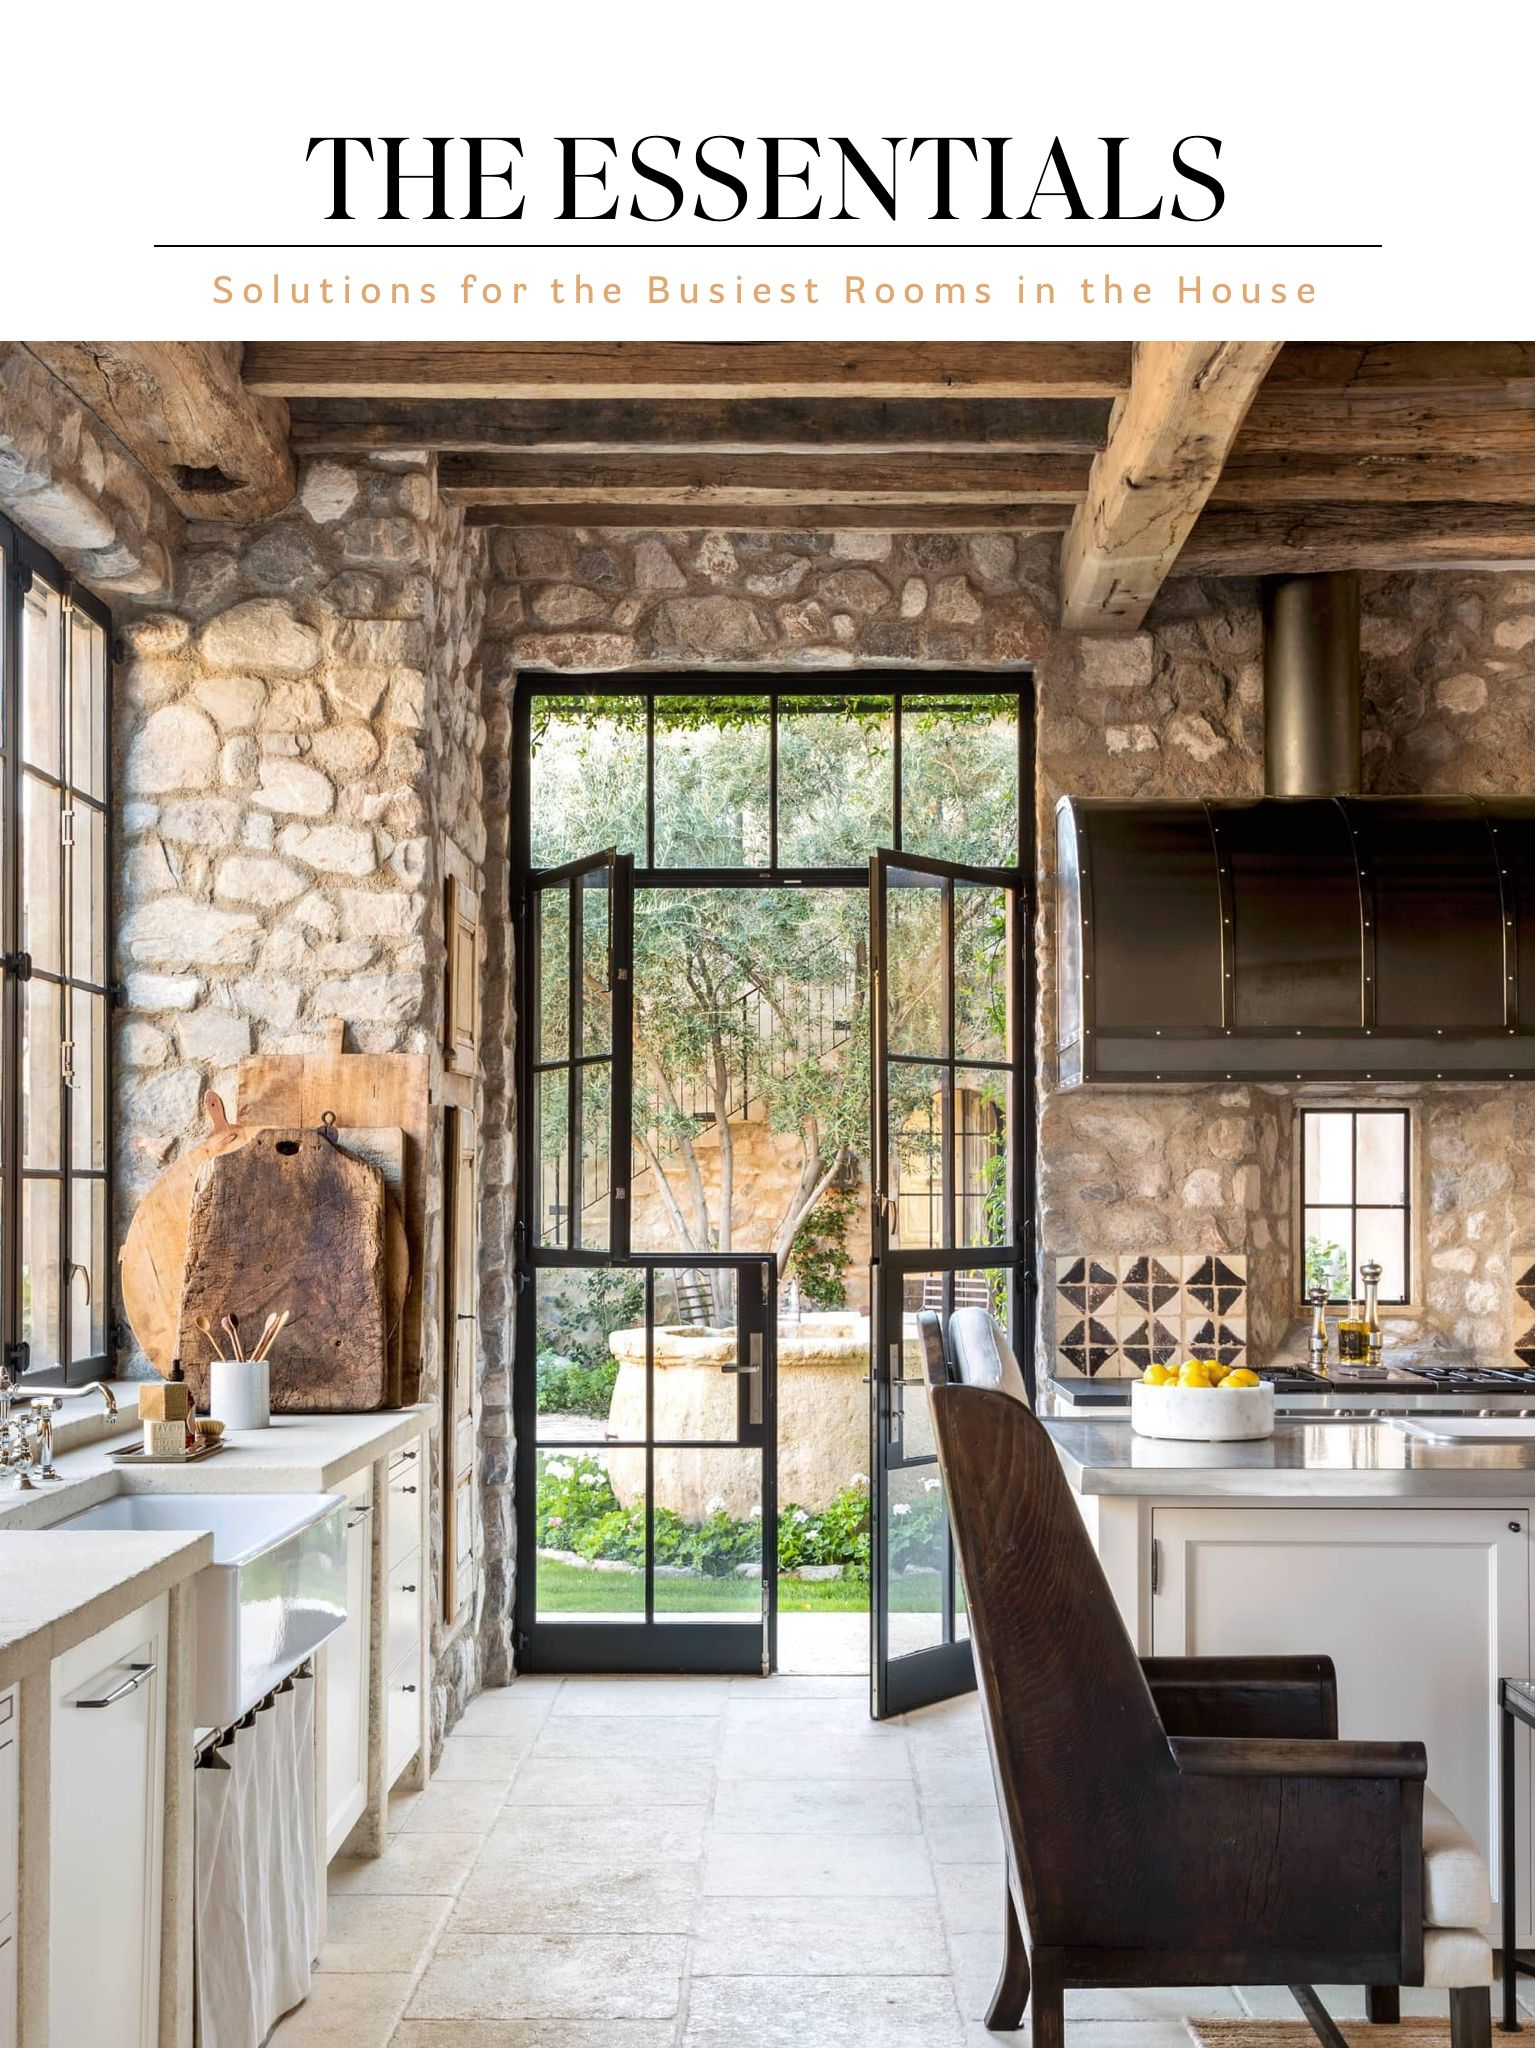 Kitchen Of The Month From House Beautiful November 2017 Read It On The Texture Country Cottage Kitchen Country Cottage Decor Farmhouse Kitchen Inspiration